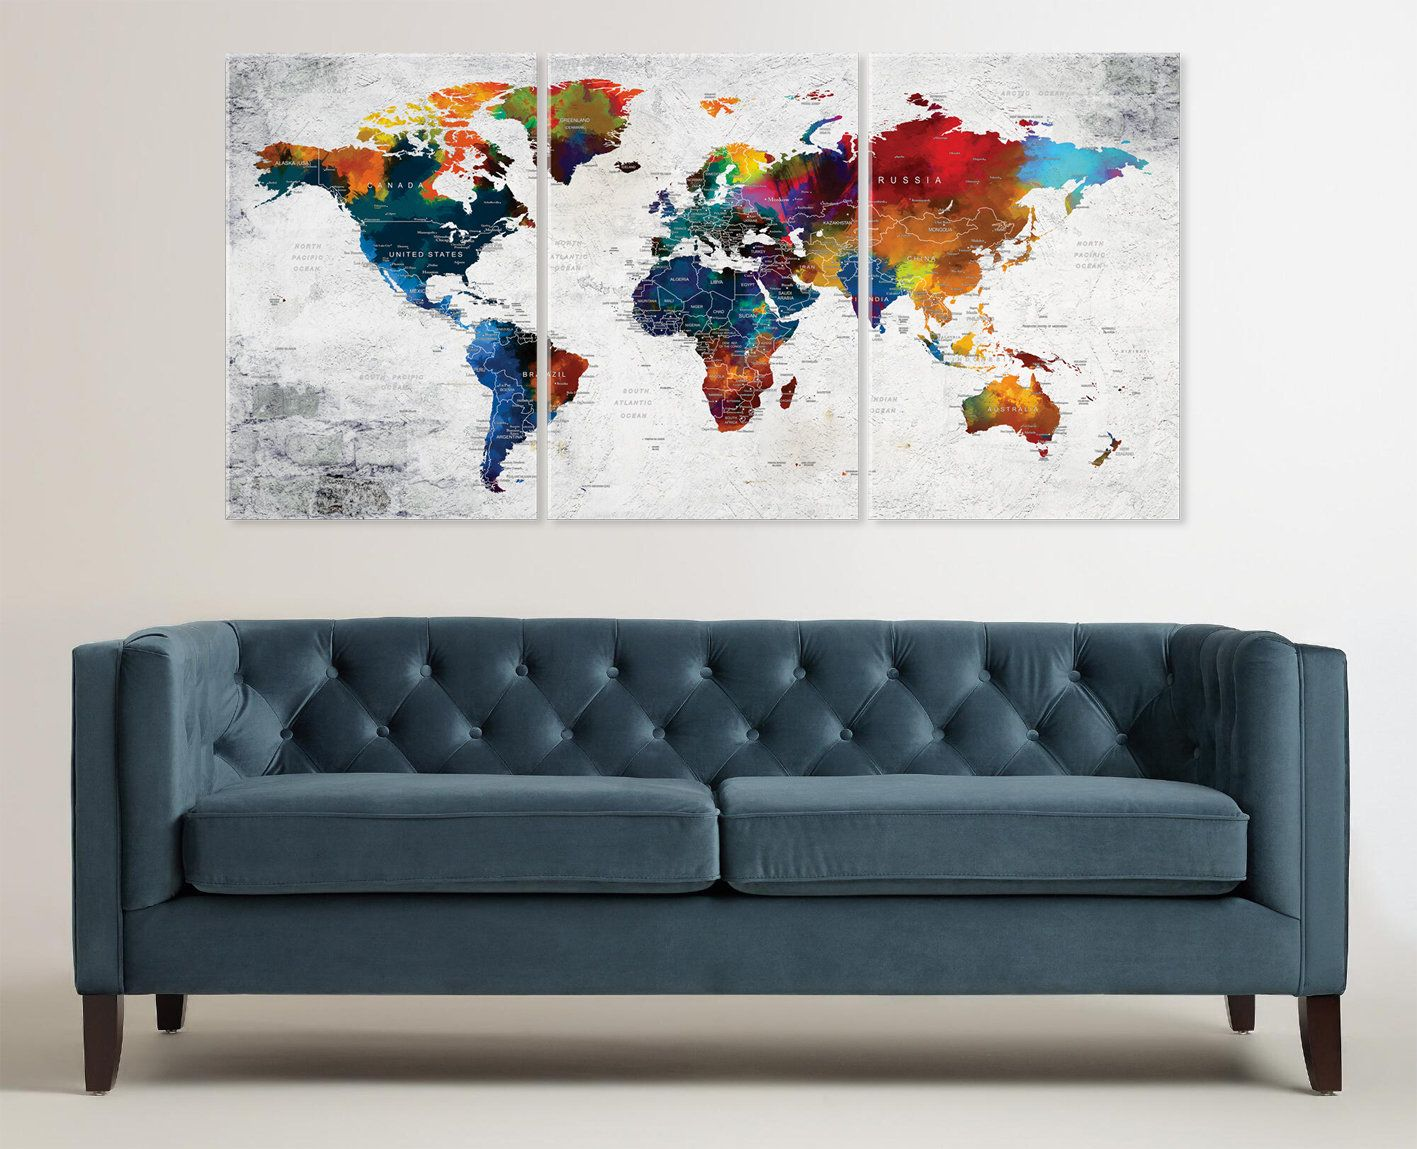 Large canvas world map art colorful push pin travel map wall decor my new design sharing to my etsy shop large canvas worldmap art colorful push pin travel map wall decor watercolor texture canvas map home or office gumiabroncs Images